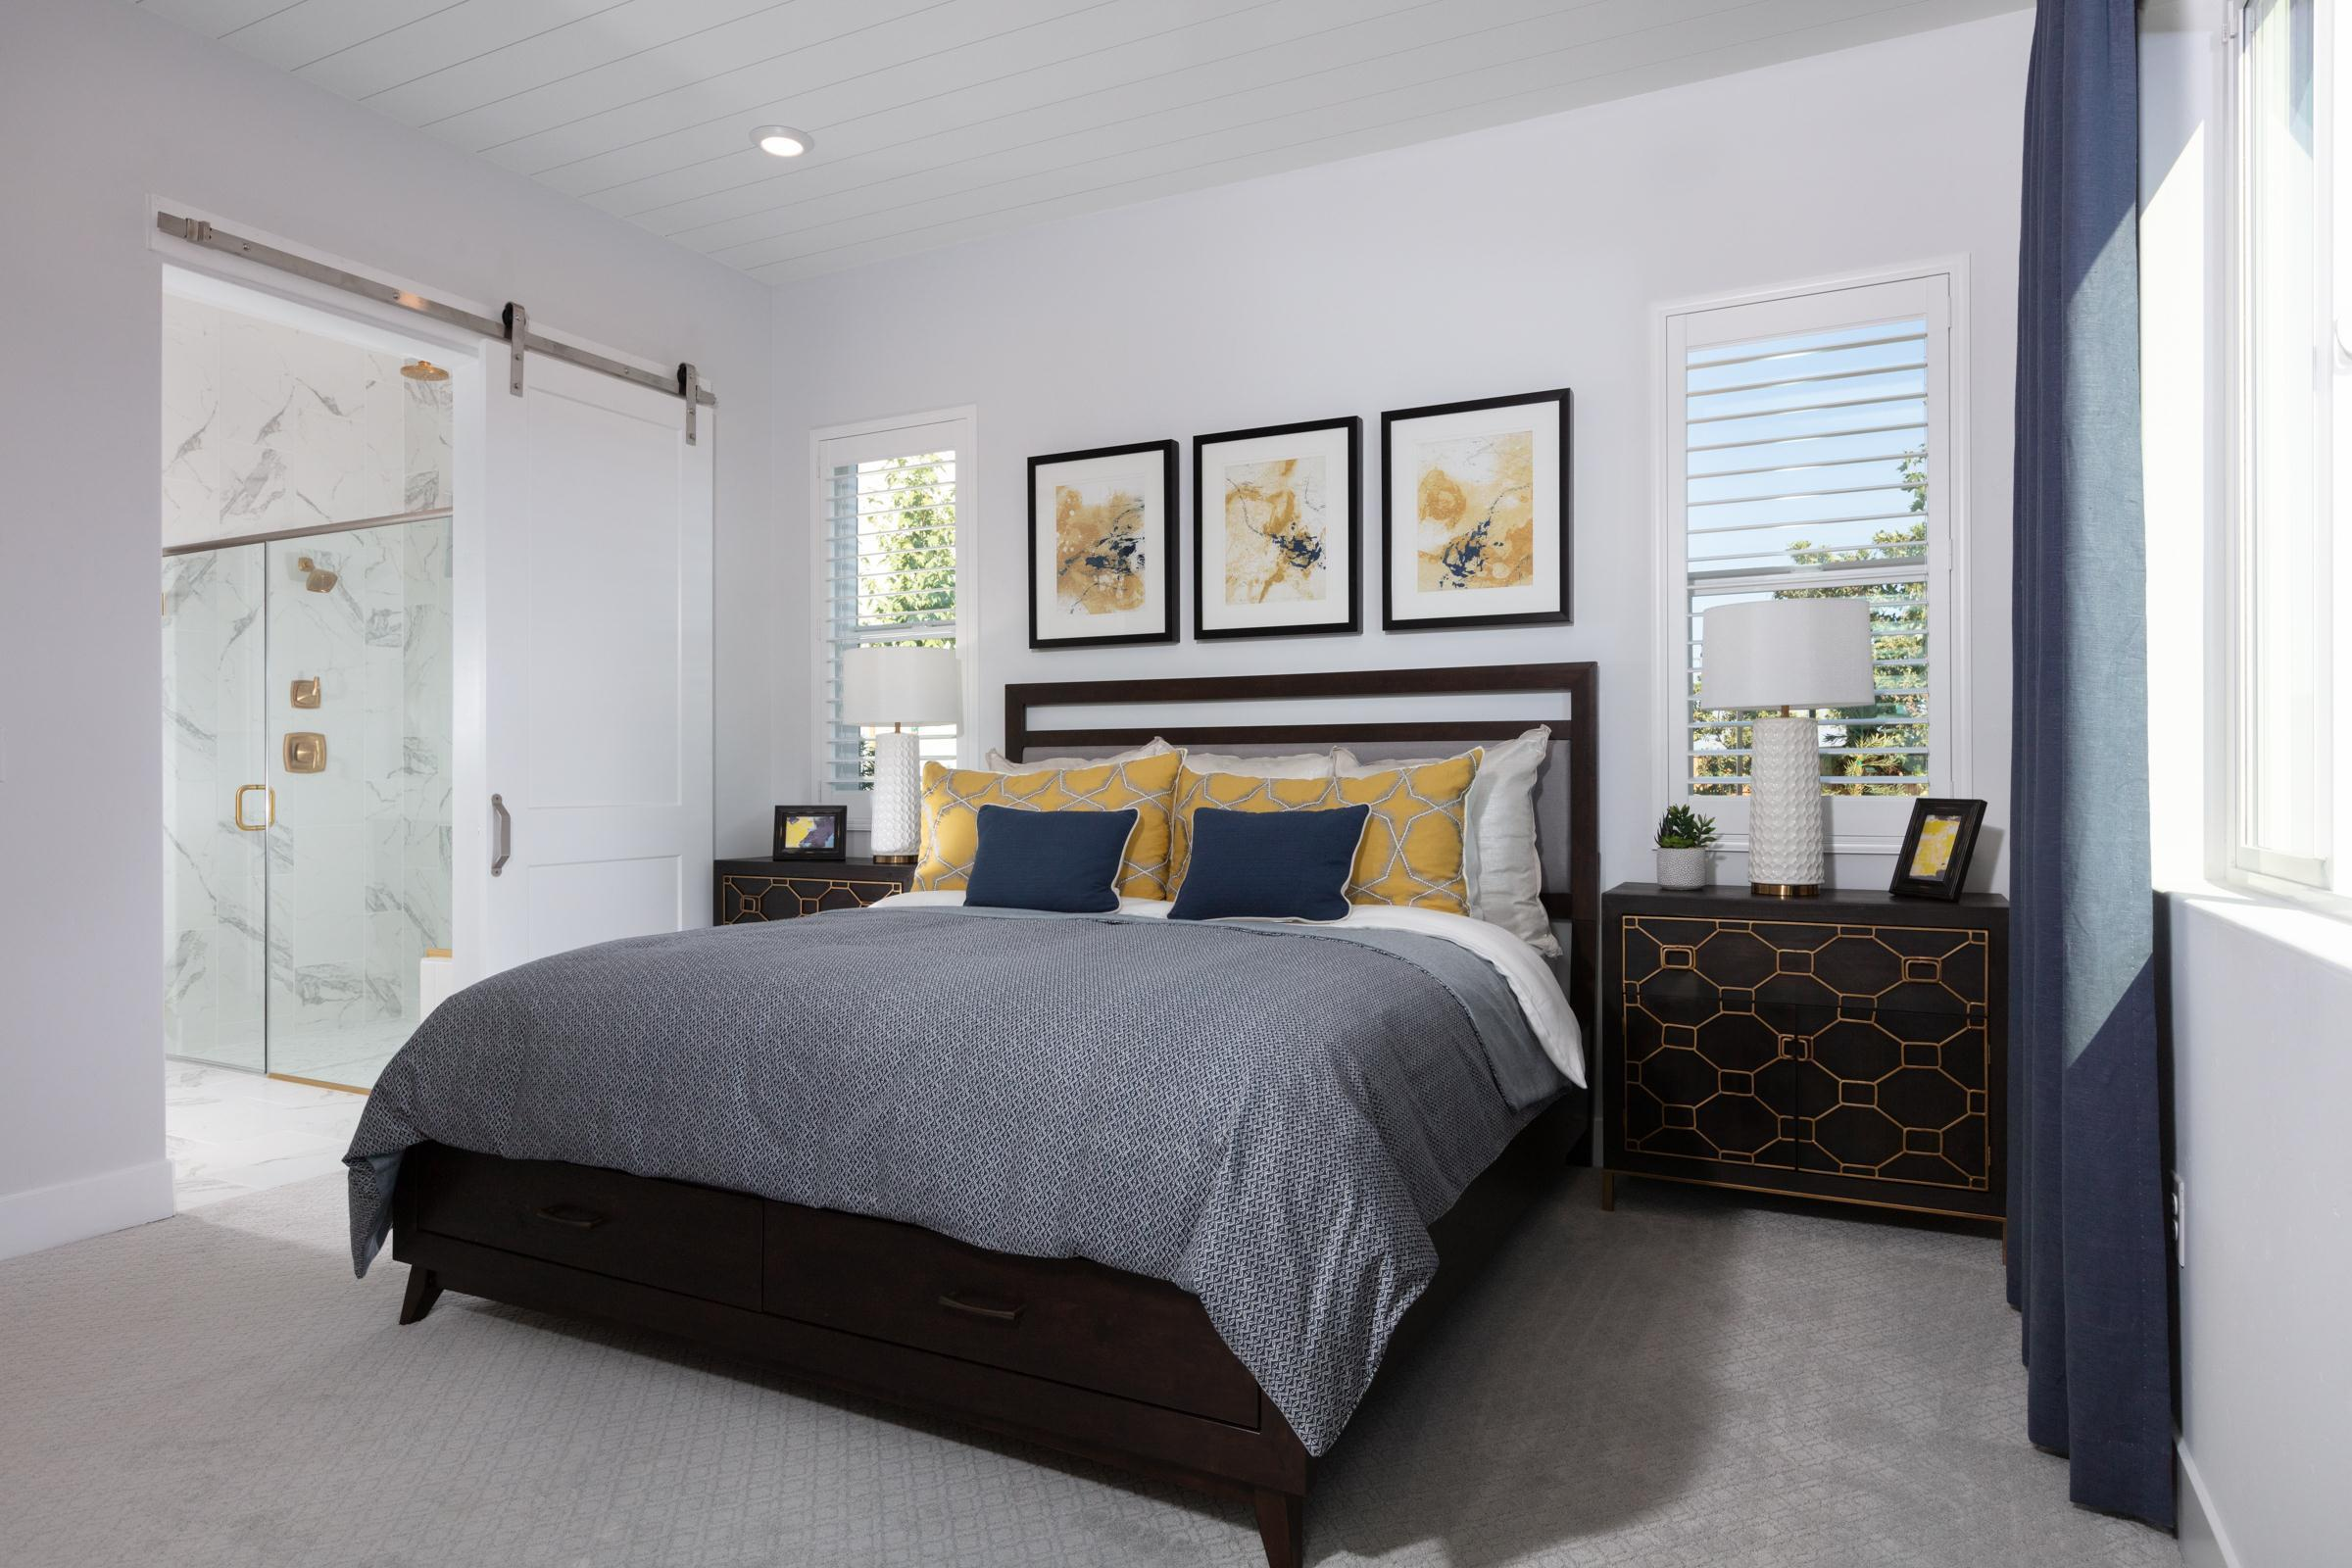 Bedroom featured in the Plan 2 Bungalow By Anthem United Homes Inc in Stockton-Lodi, CA